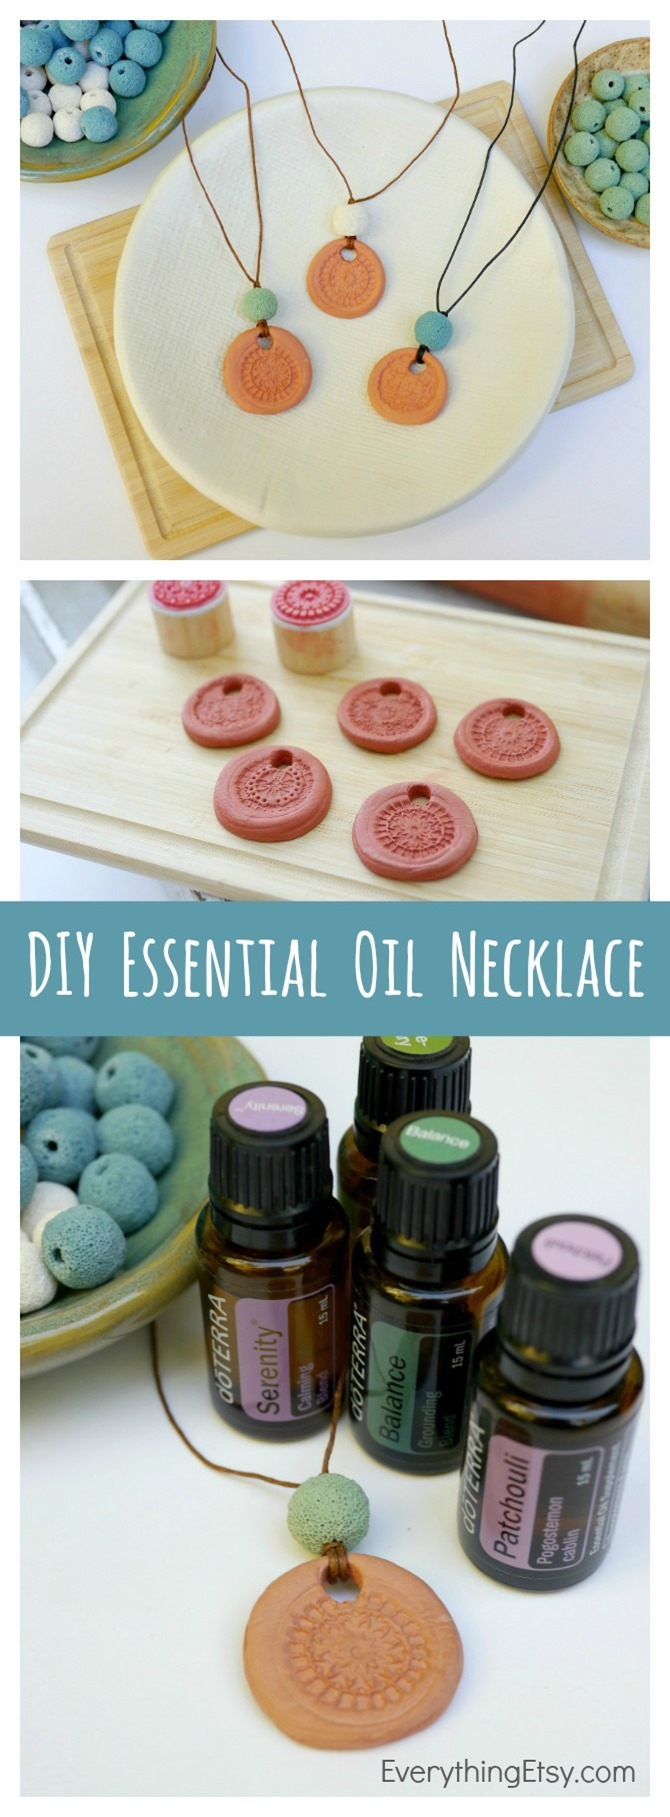 DIY Essential Oil Necklace Using doTERRA Essential Oils - EverythingEtsy.com